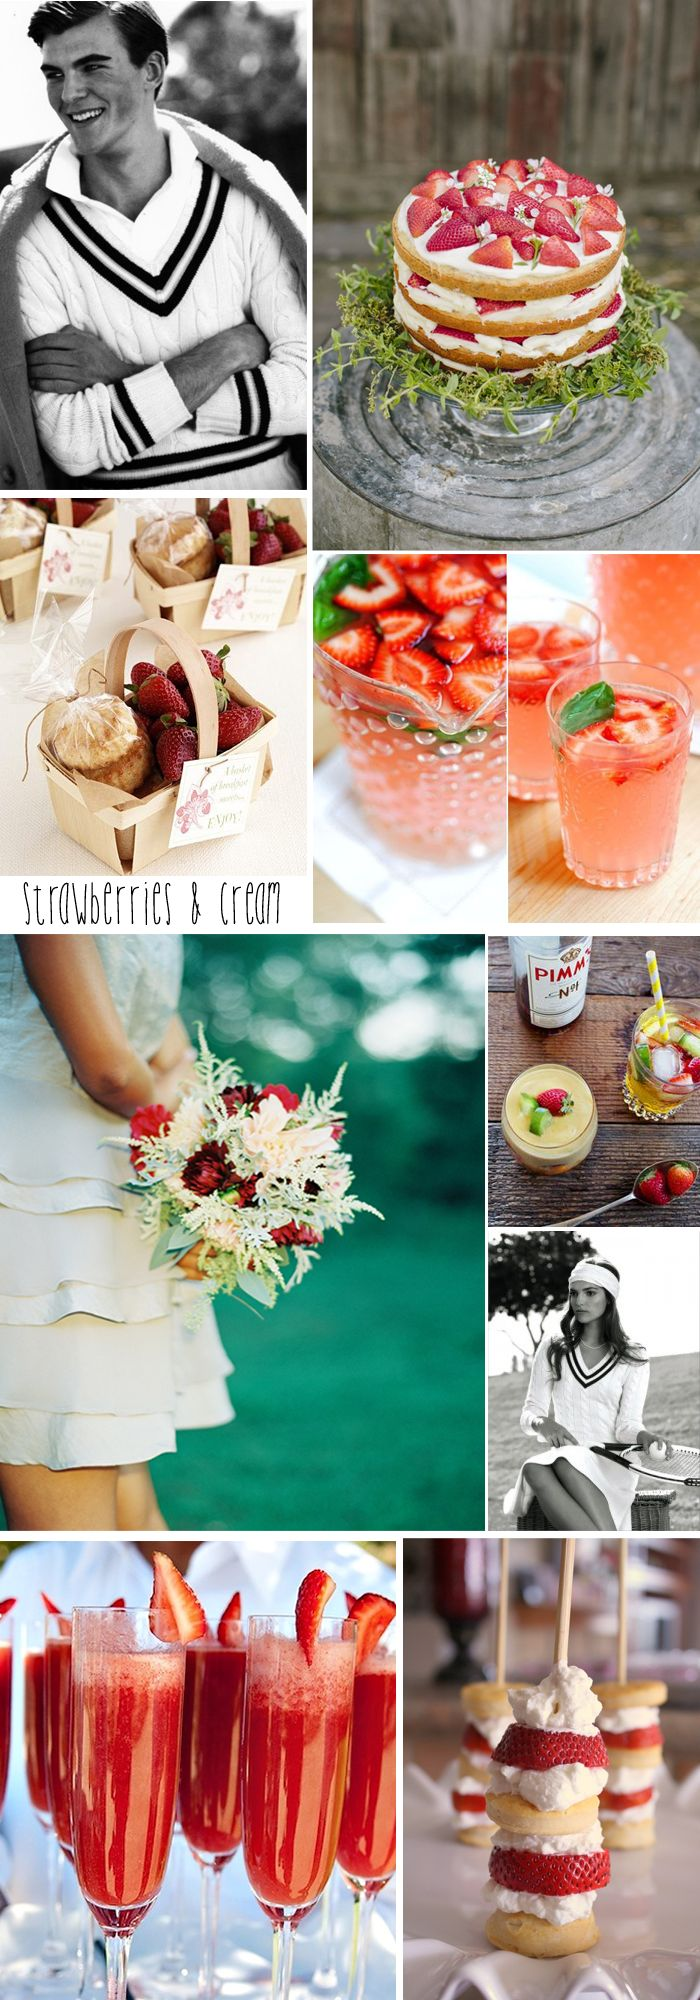 Strawberries & Cream, a Wimbledon themed wedding inspiration board www.agoodoldkneesup.com